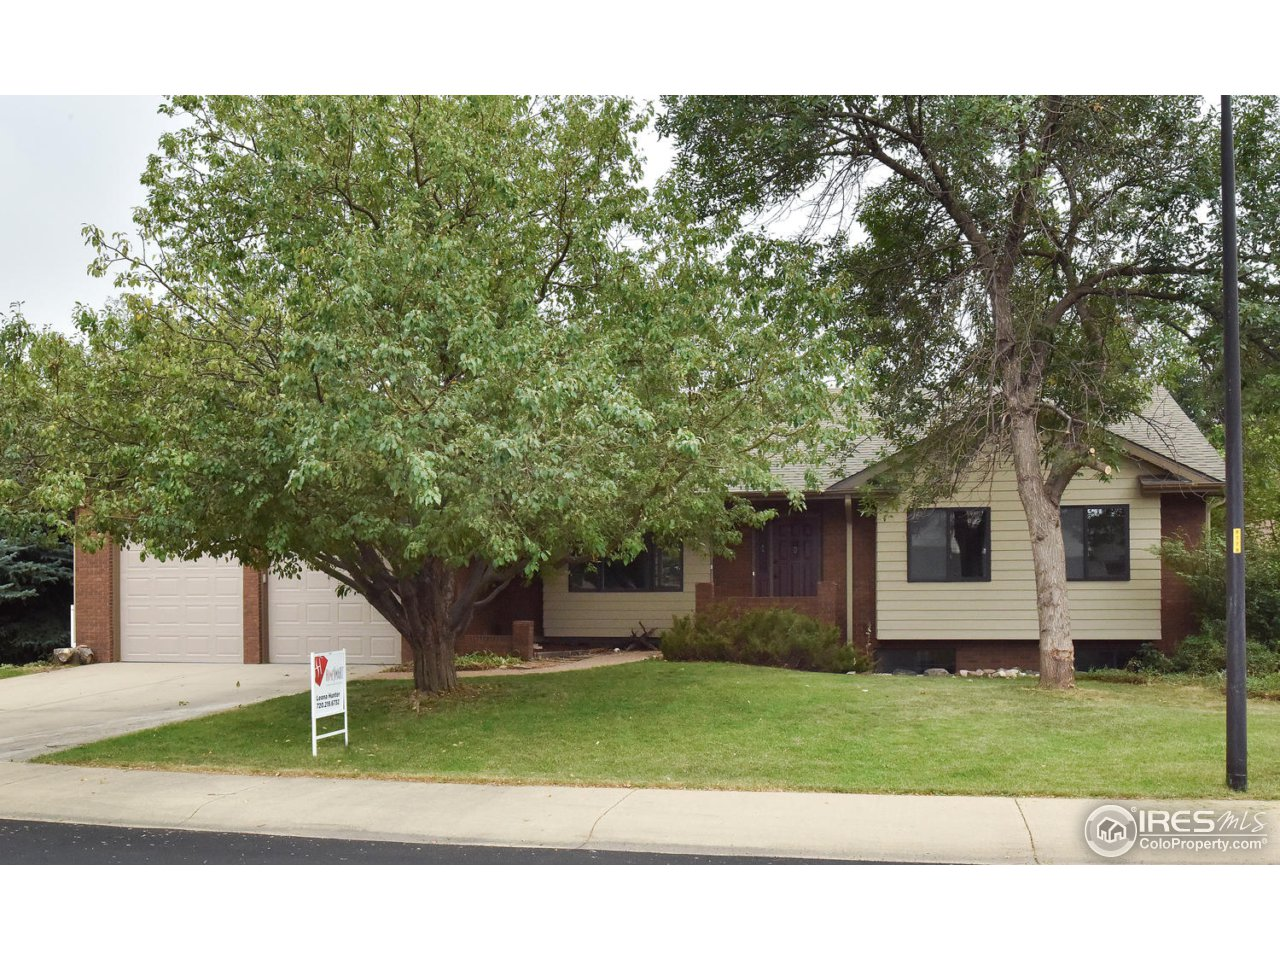 2825 Seccomb St, Fort Collins CO 80526